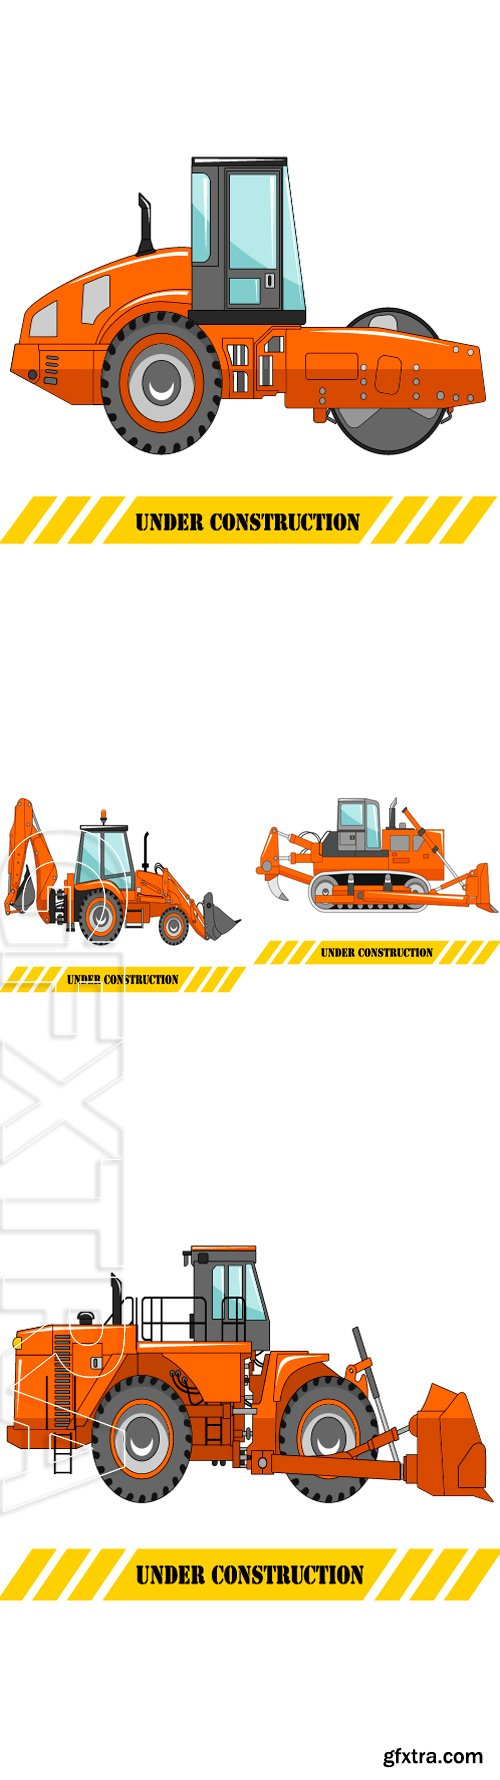 Stock Vectors - Detailed illustration and machinery